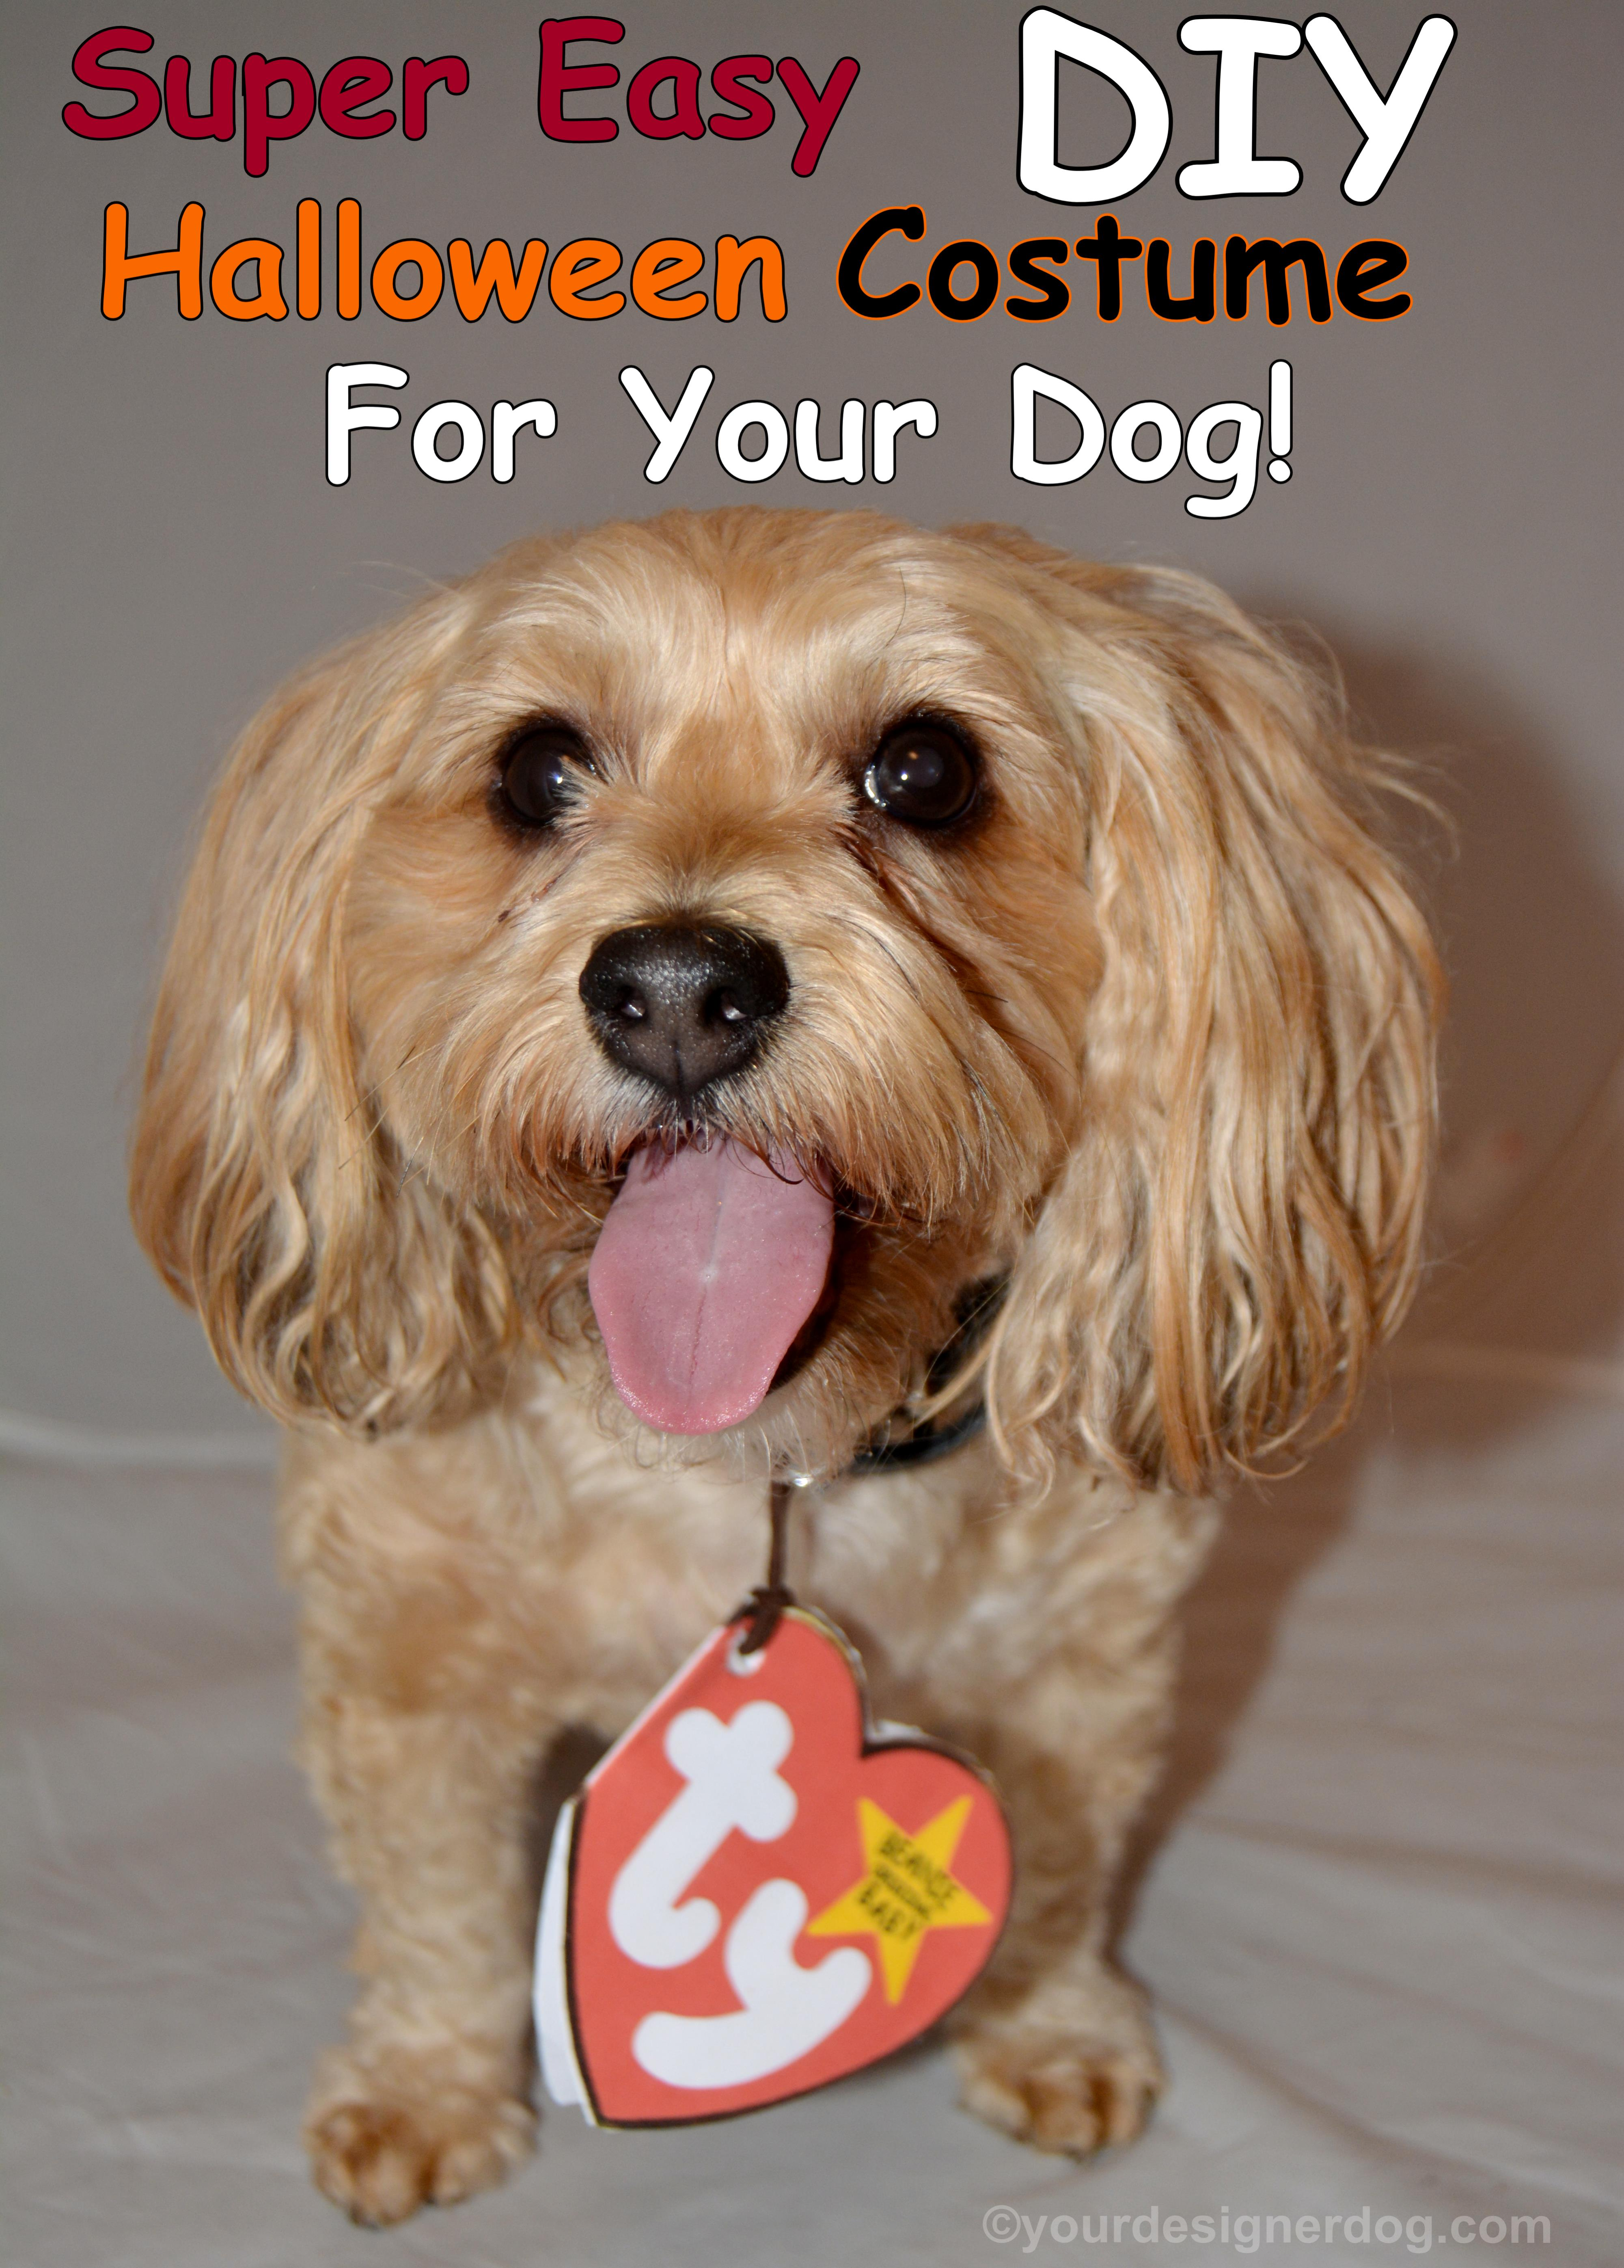 Super Easy DIY Halloween Costume For Your Dog!